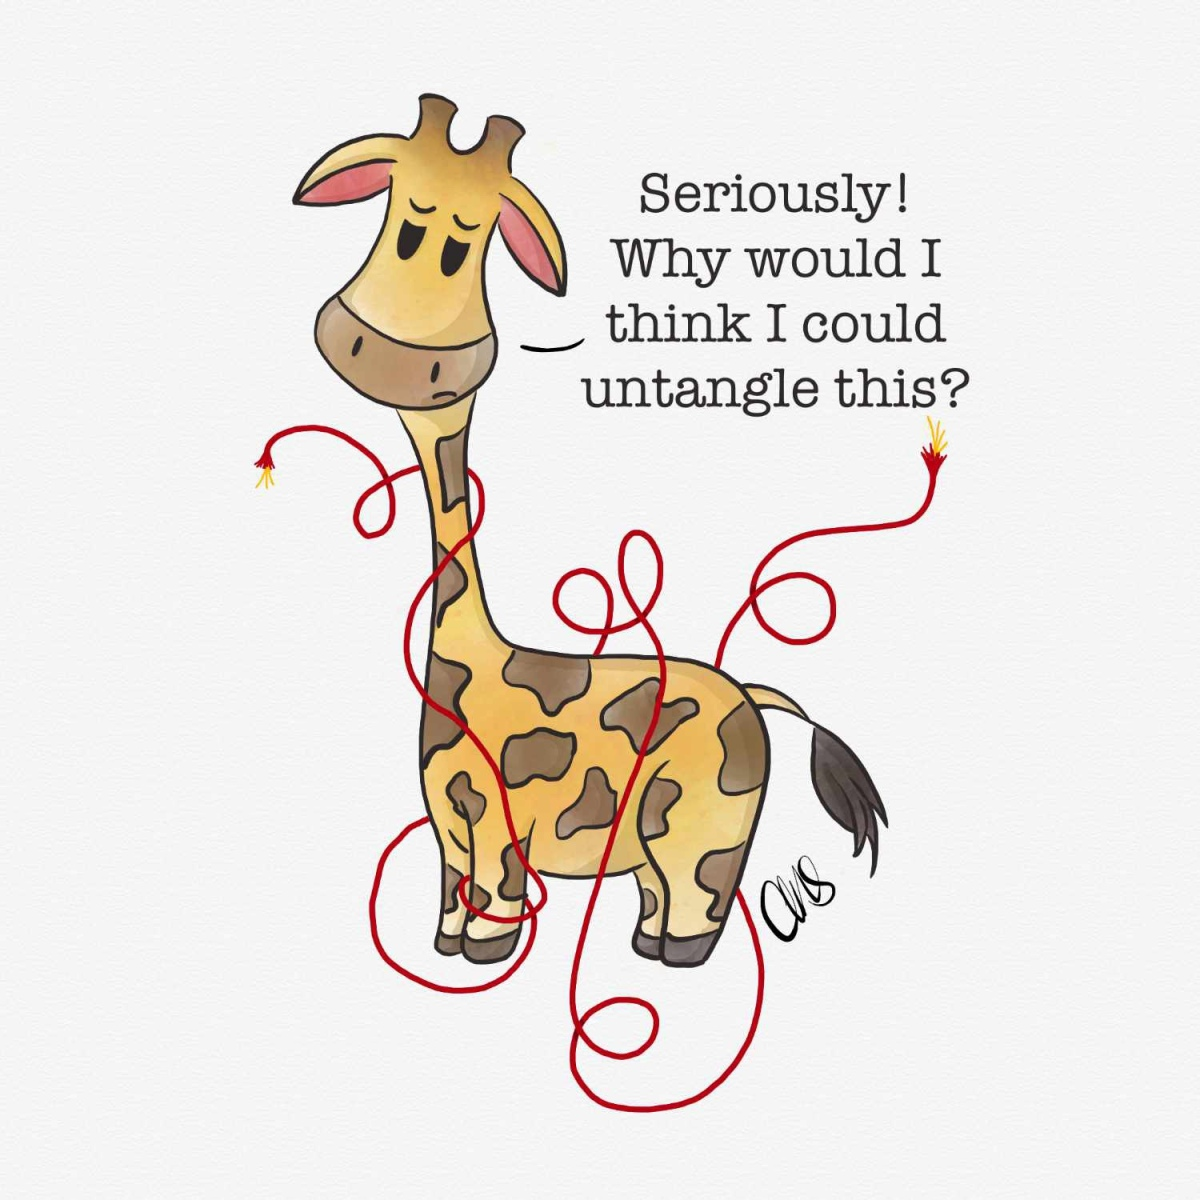 ink and watercolor illustration of a sad giraffe (named Gigi) who is tangled in a red wire.